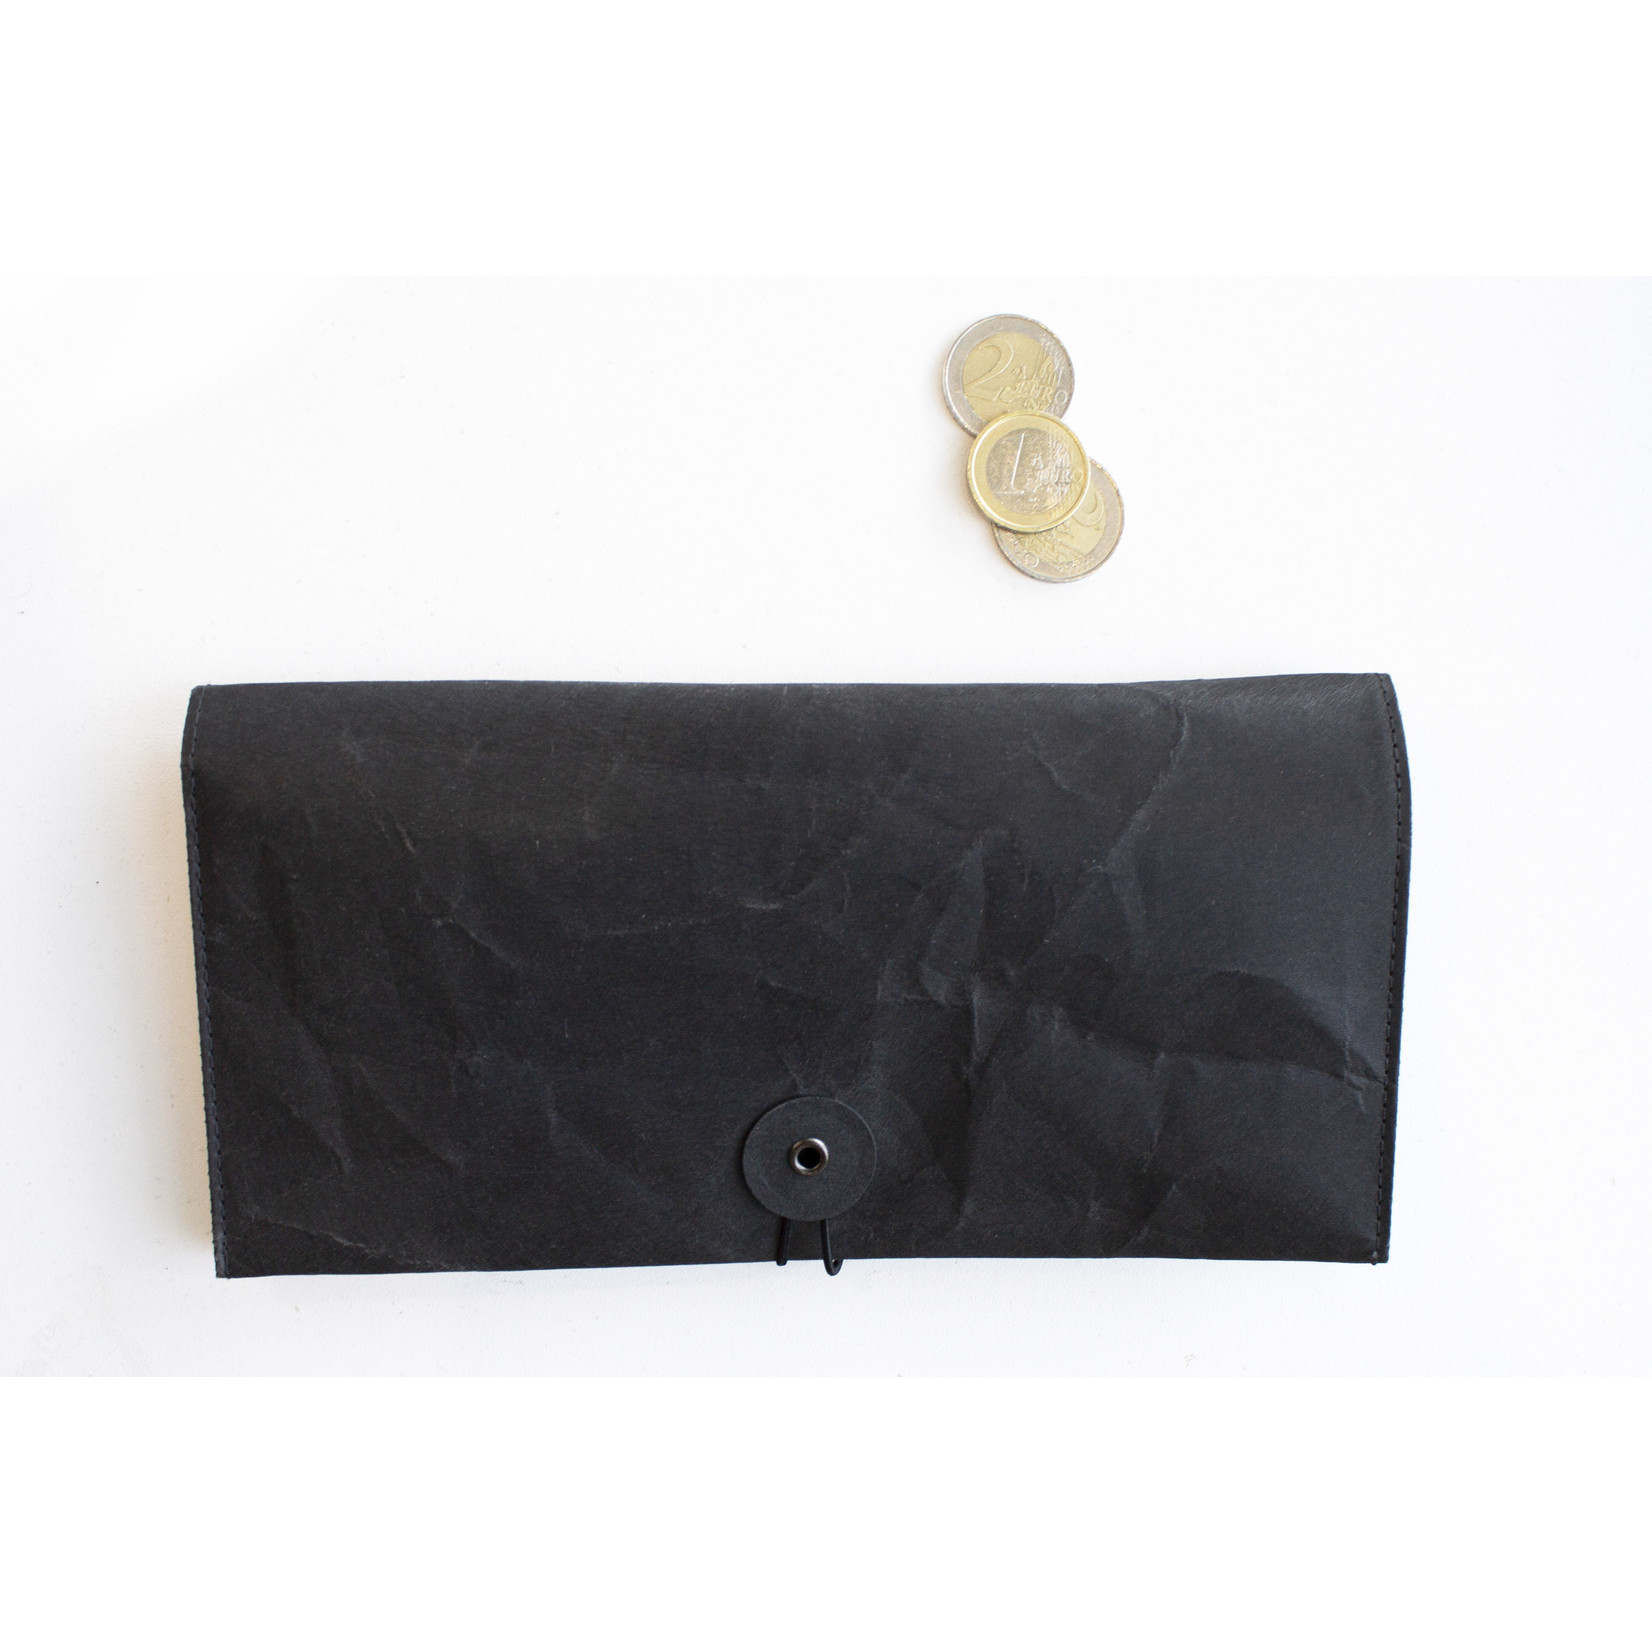 Based on Roots SIWA wallet / passport case